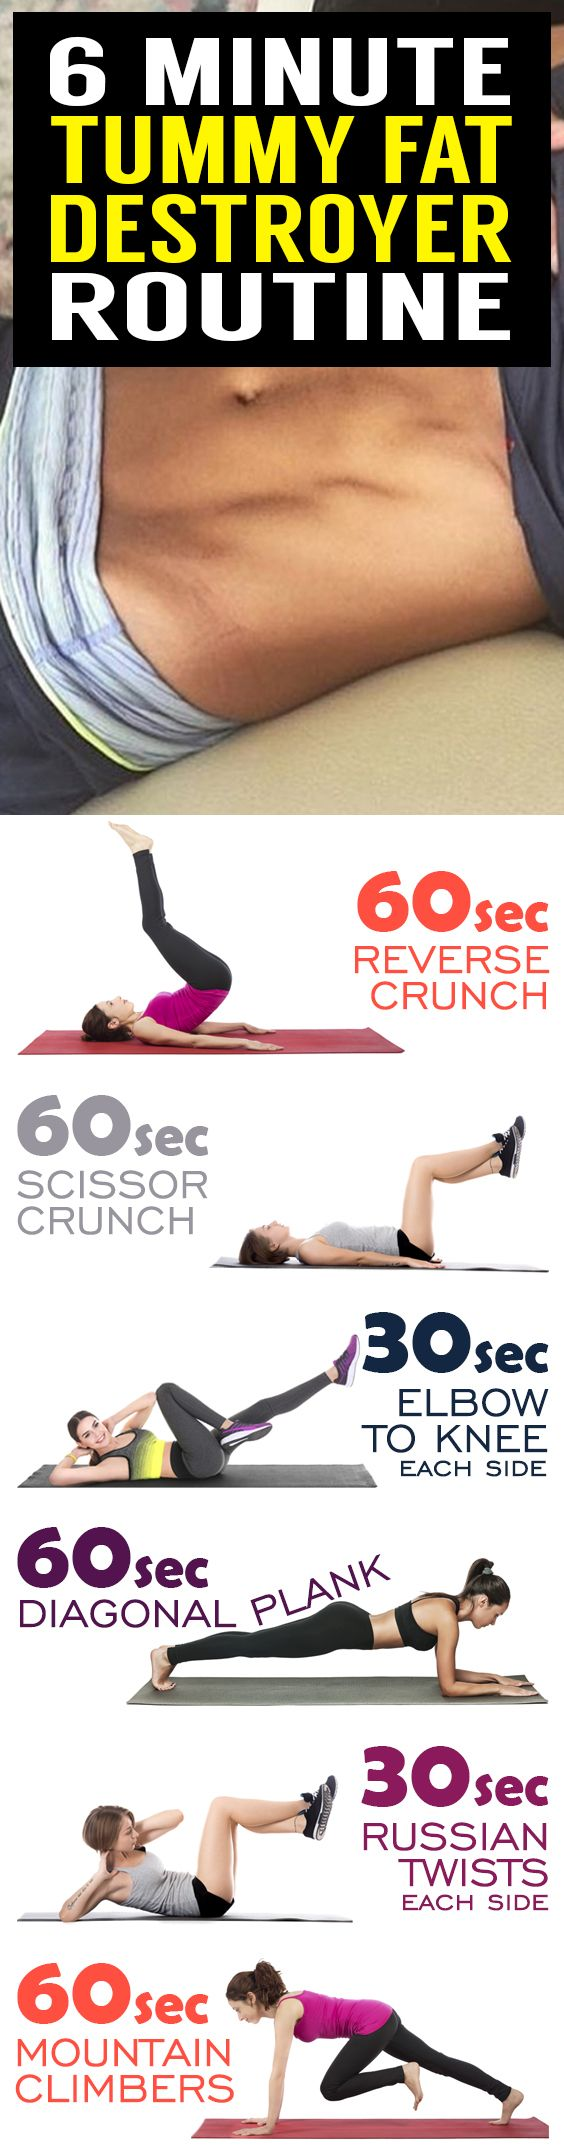 Summer's here and the heat is on to tighten up your tummy for the pool or beach. If you want your belly to be bikini-ready fast you need exercises that engage all your abdominal muscles. This killer tummy-cinching routine works magic on muffin tops and that soft belly pooch and will leave your tummy tight and toned in two weeks!